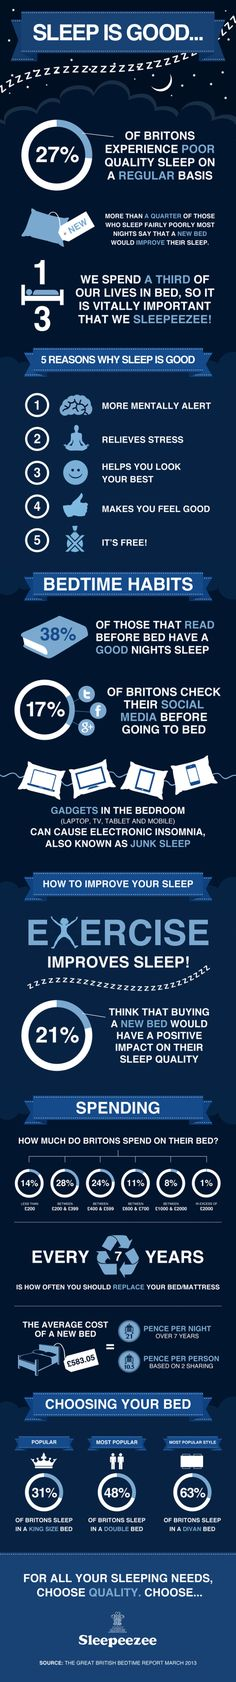 We spend a third of our lives in bed (at least :) ) Exercise improves sleep.